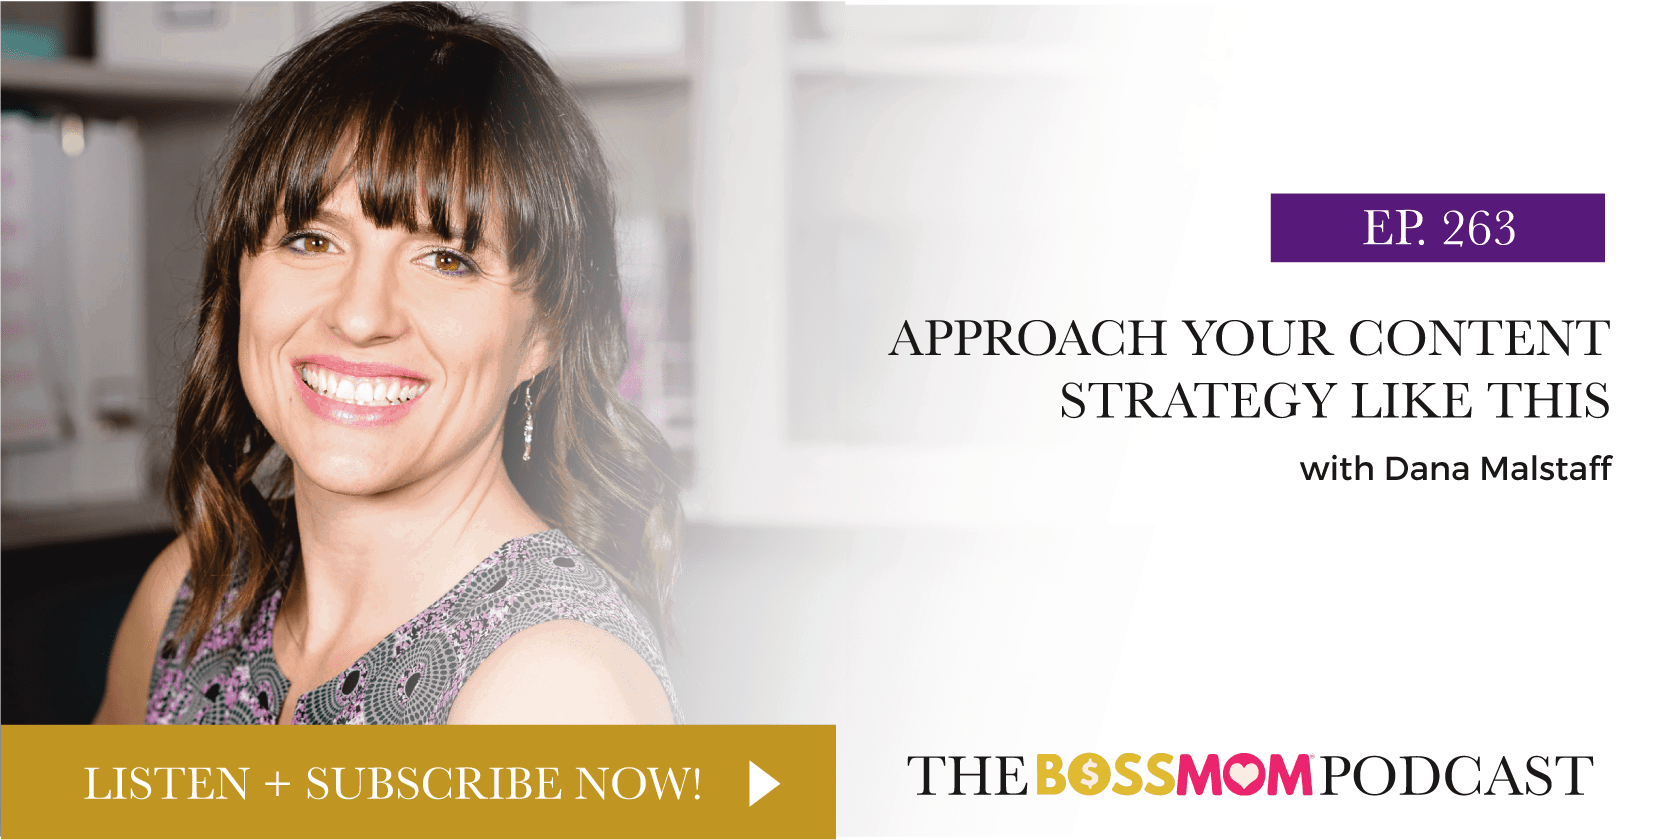 Episode 263: Approach Your Content Strategy Like This